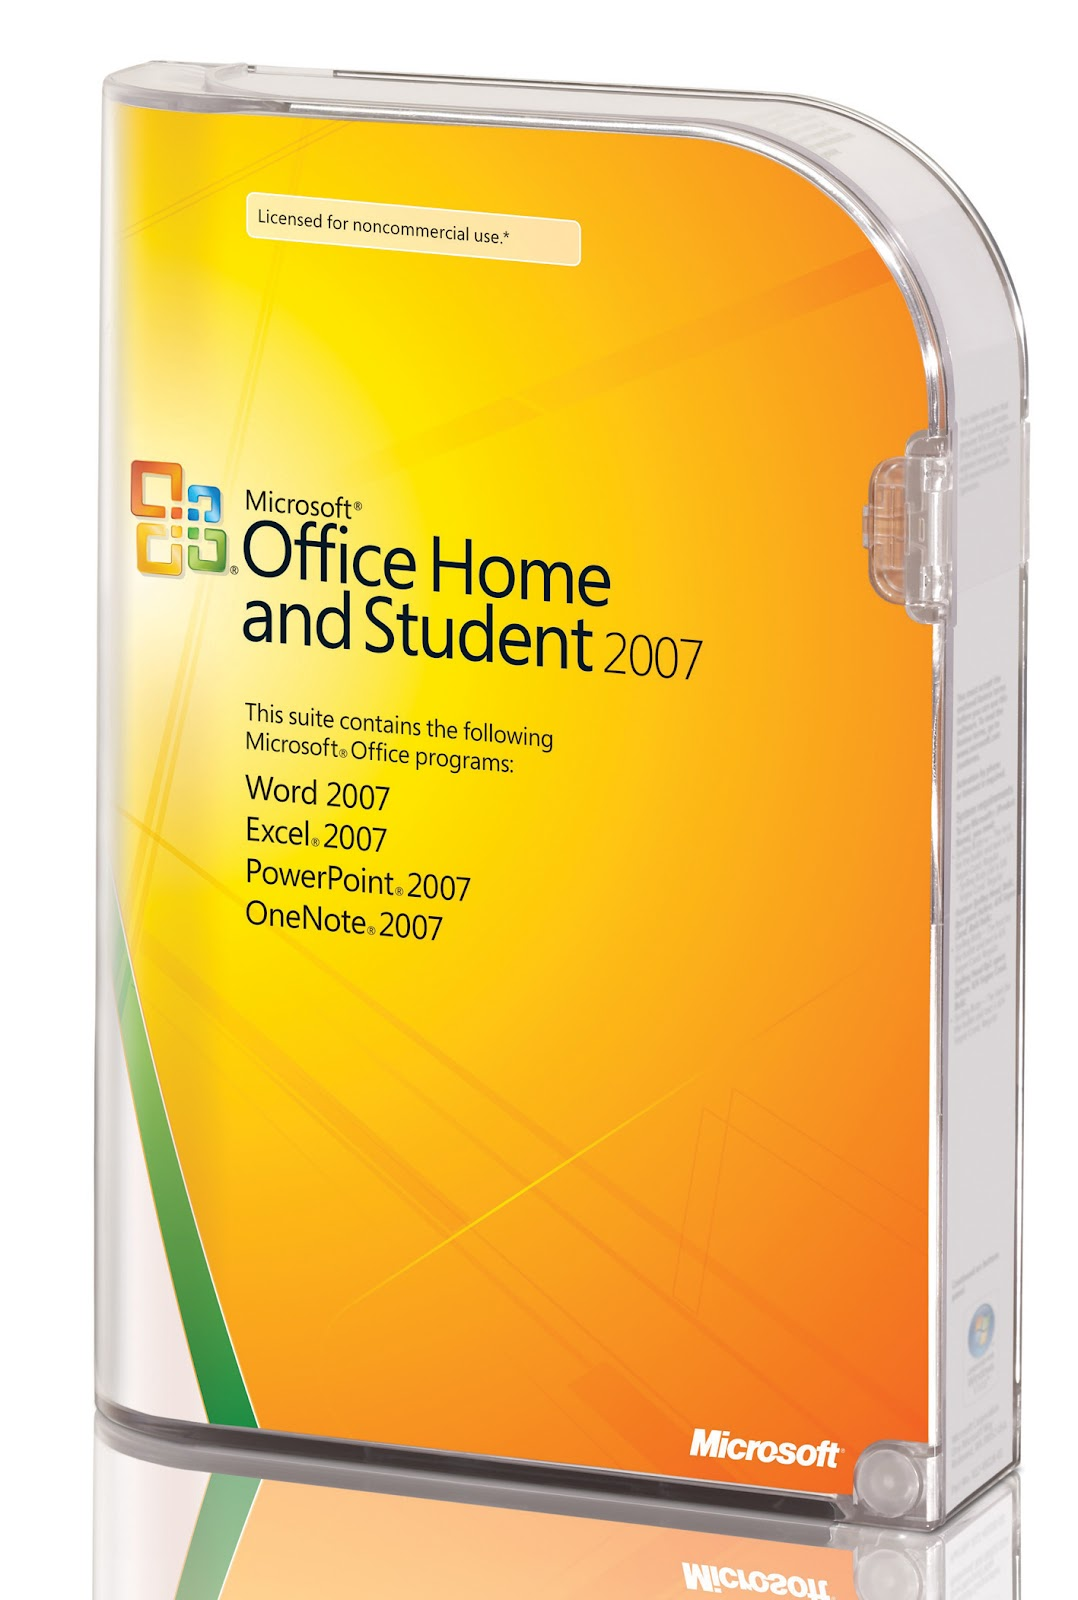 <span>Free <b class=sec>Product</b> <b class=sec>Key</b> for <b class=sec>Microsoft Office</b> <b class=sec>2007</b> - 2018</span>